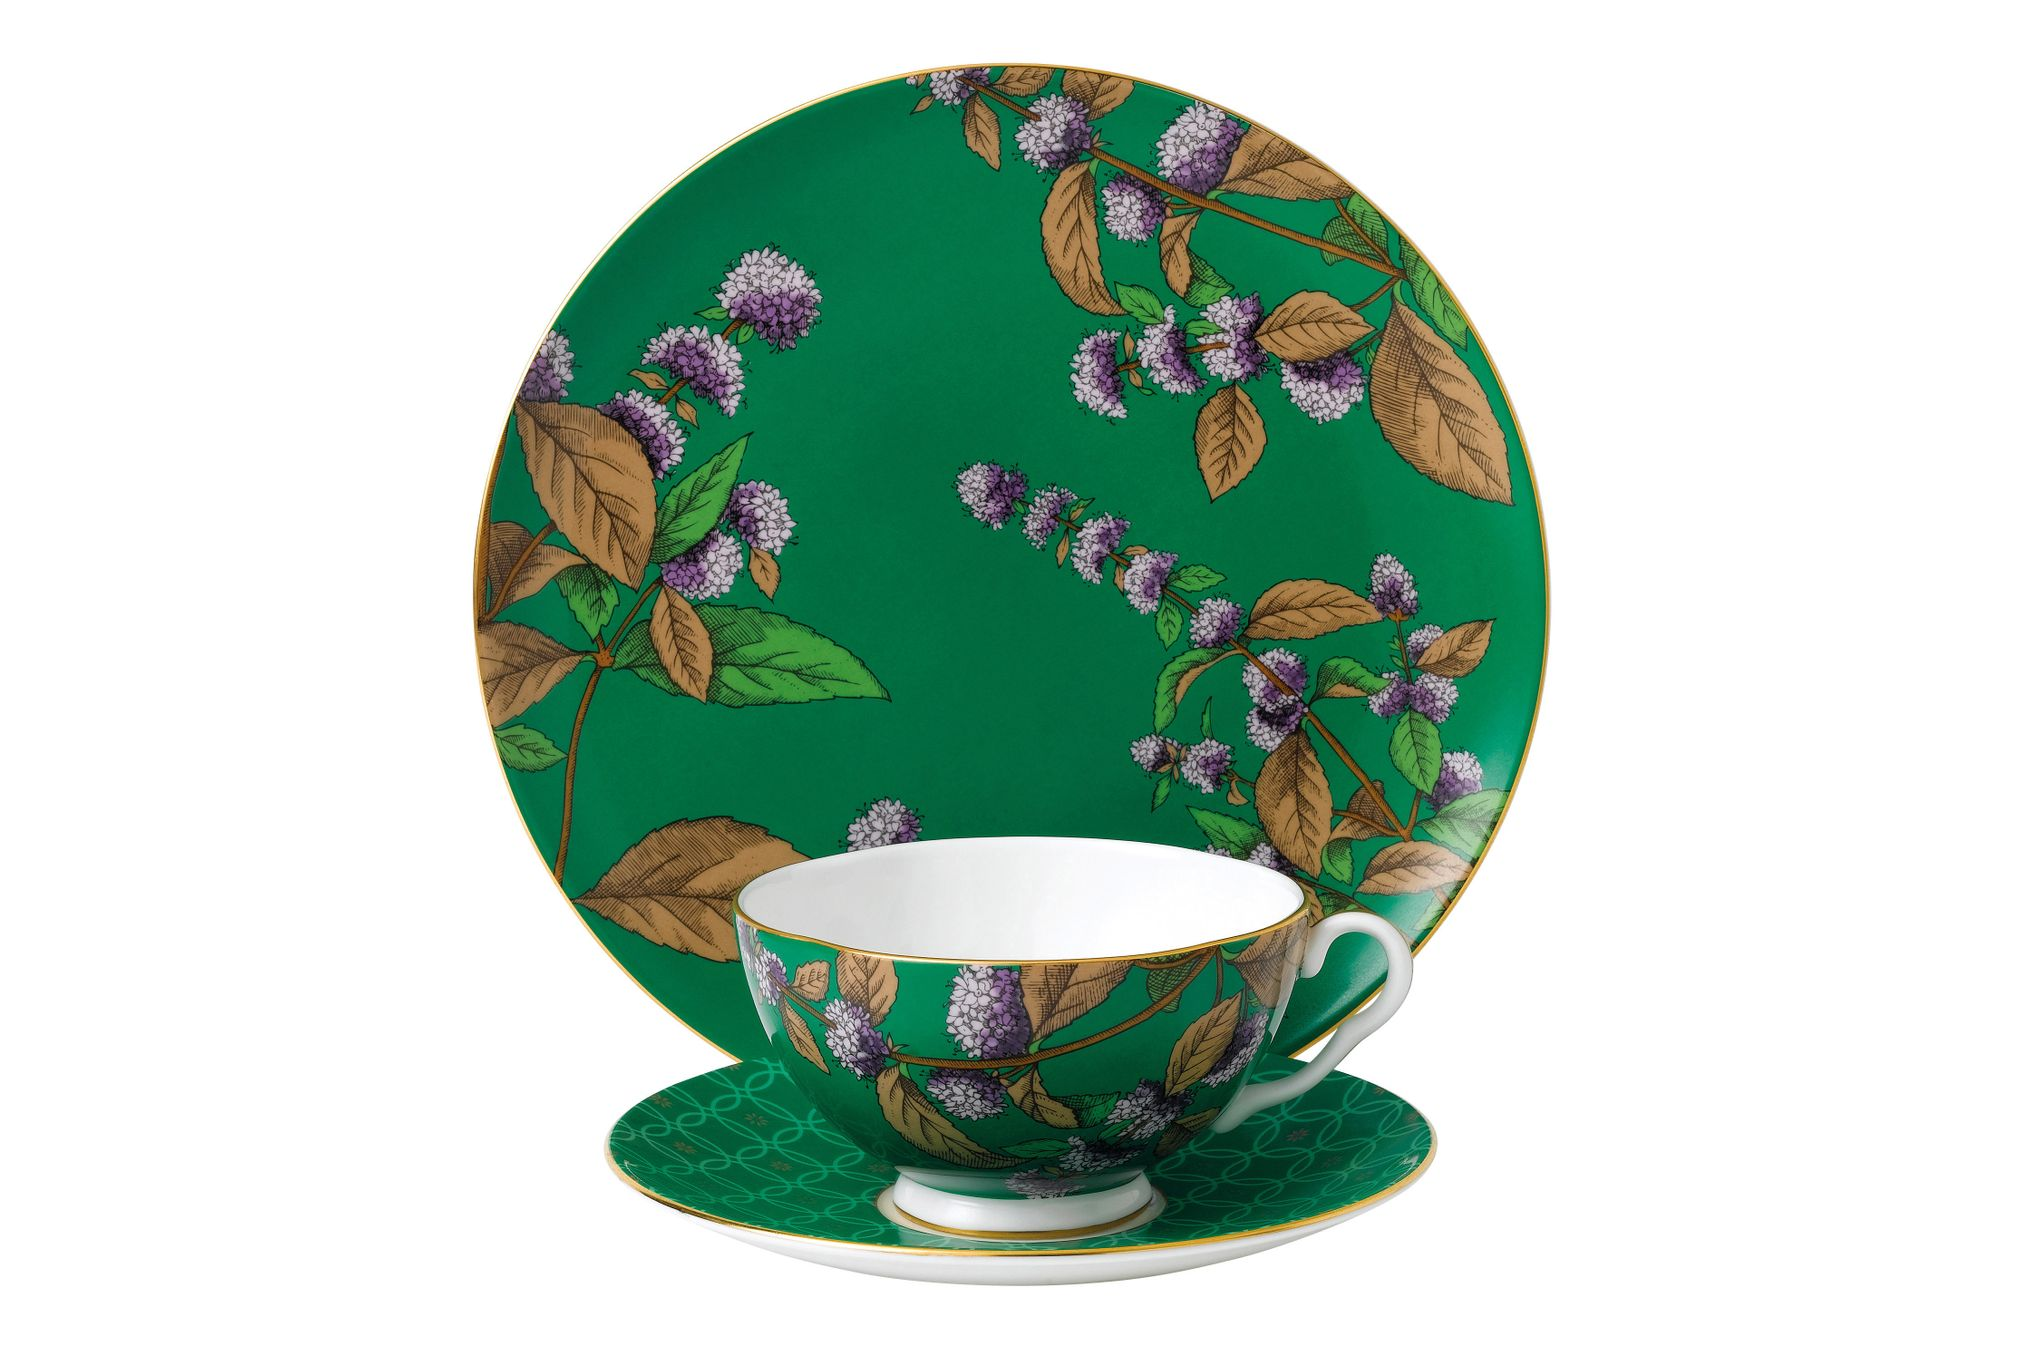 Wedgwood Tea Garden 3 Piece Set Plate 21cm, Teacup & Saucer Green Tea & Mint thumb 1